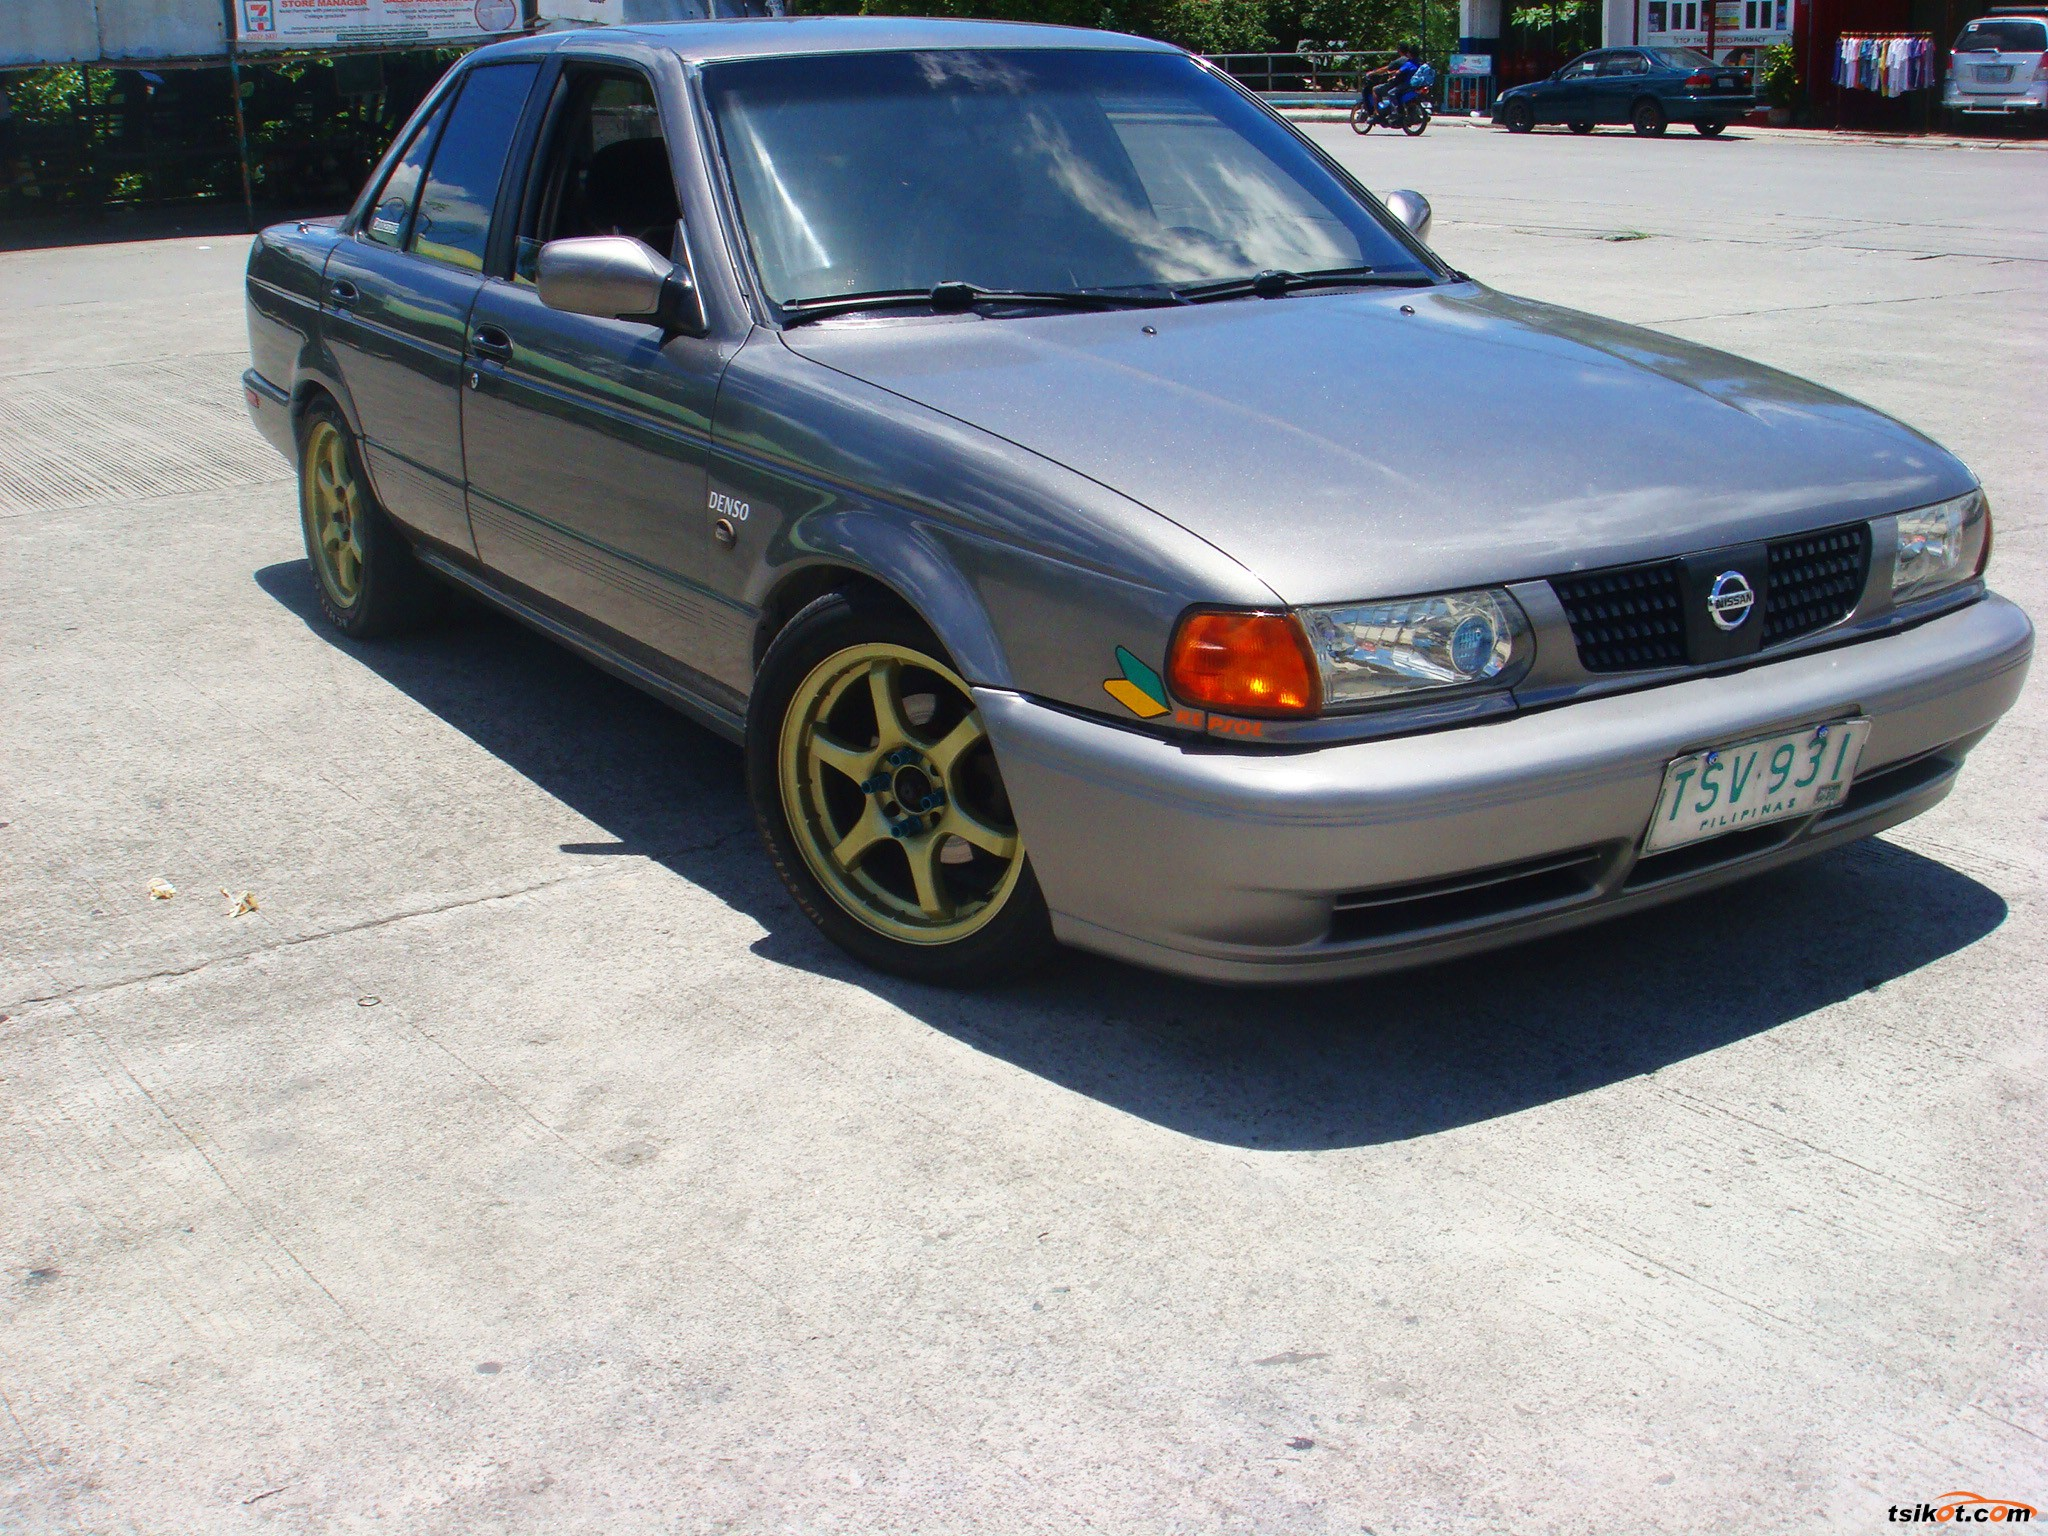 nissan sentra 1995 car for sale metro manila. Black Bedroom Furniture Sets. Home Design Ideas